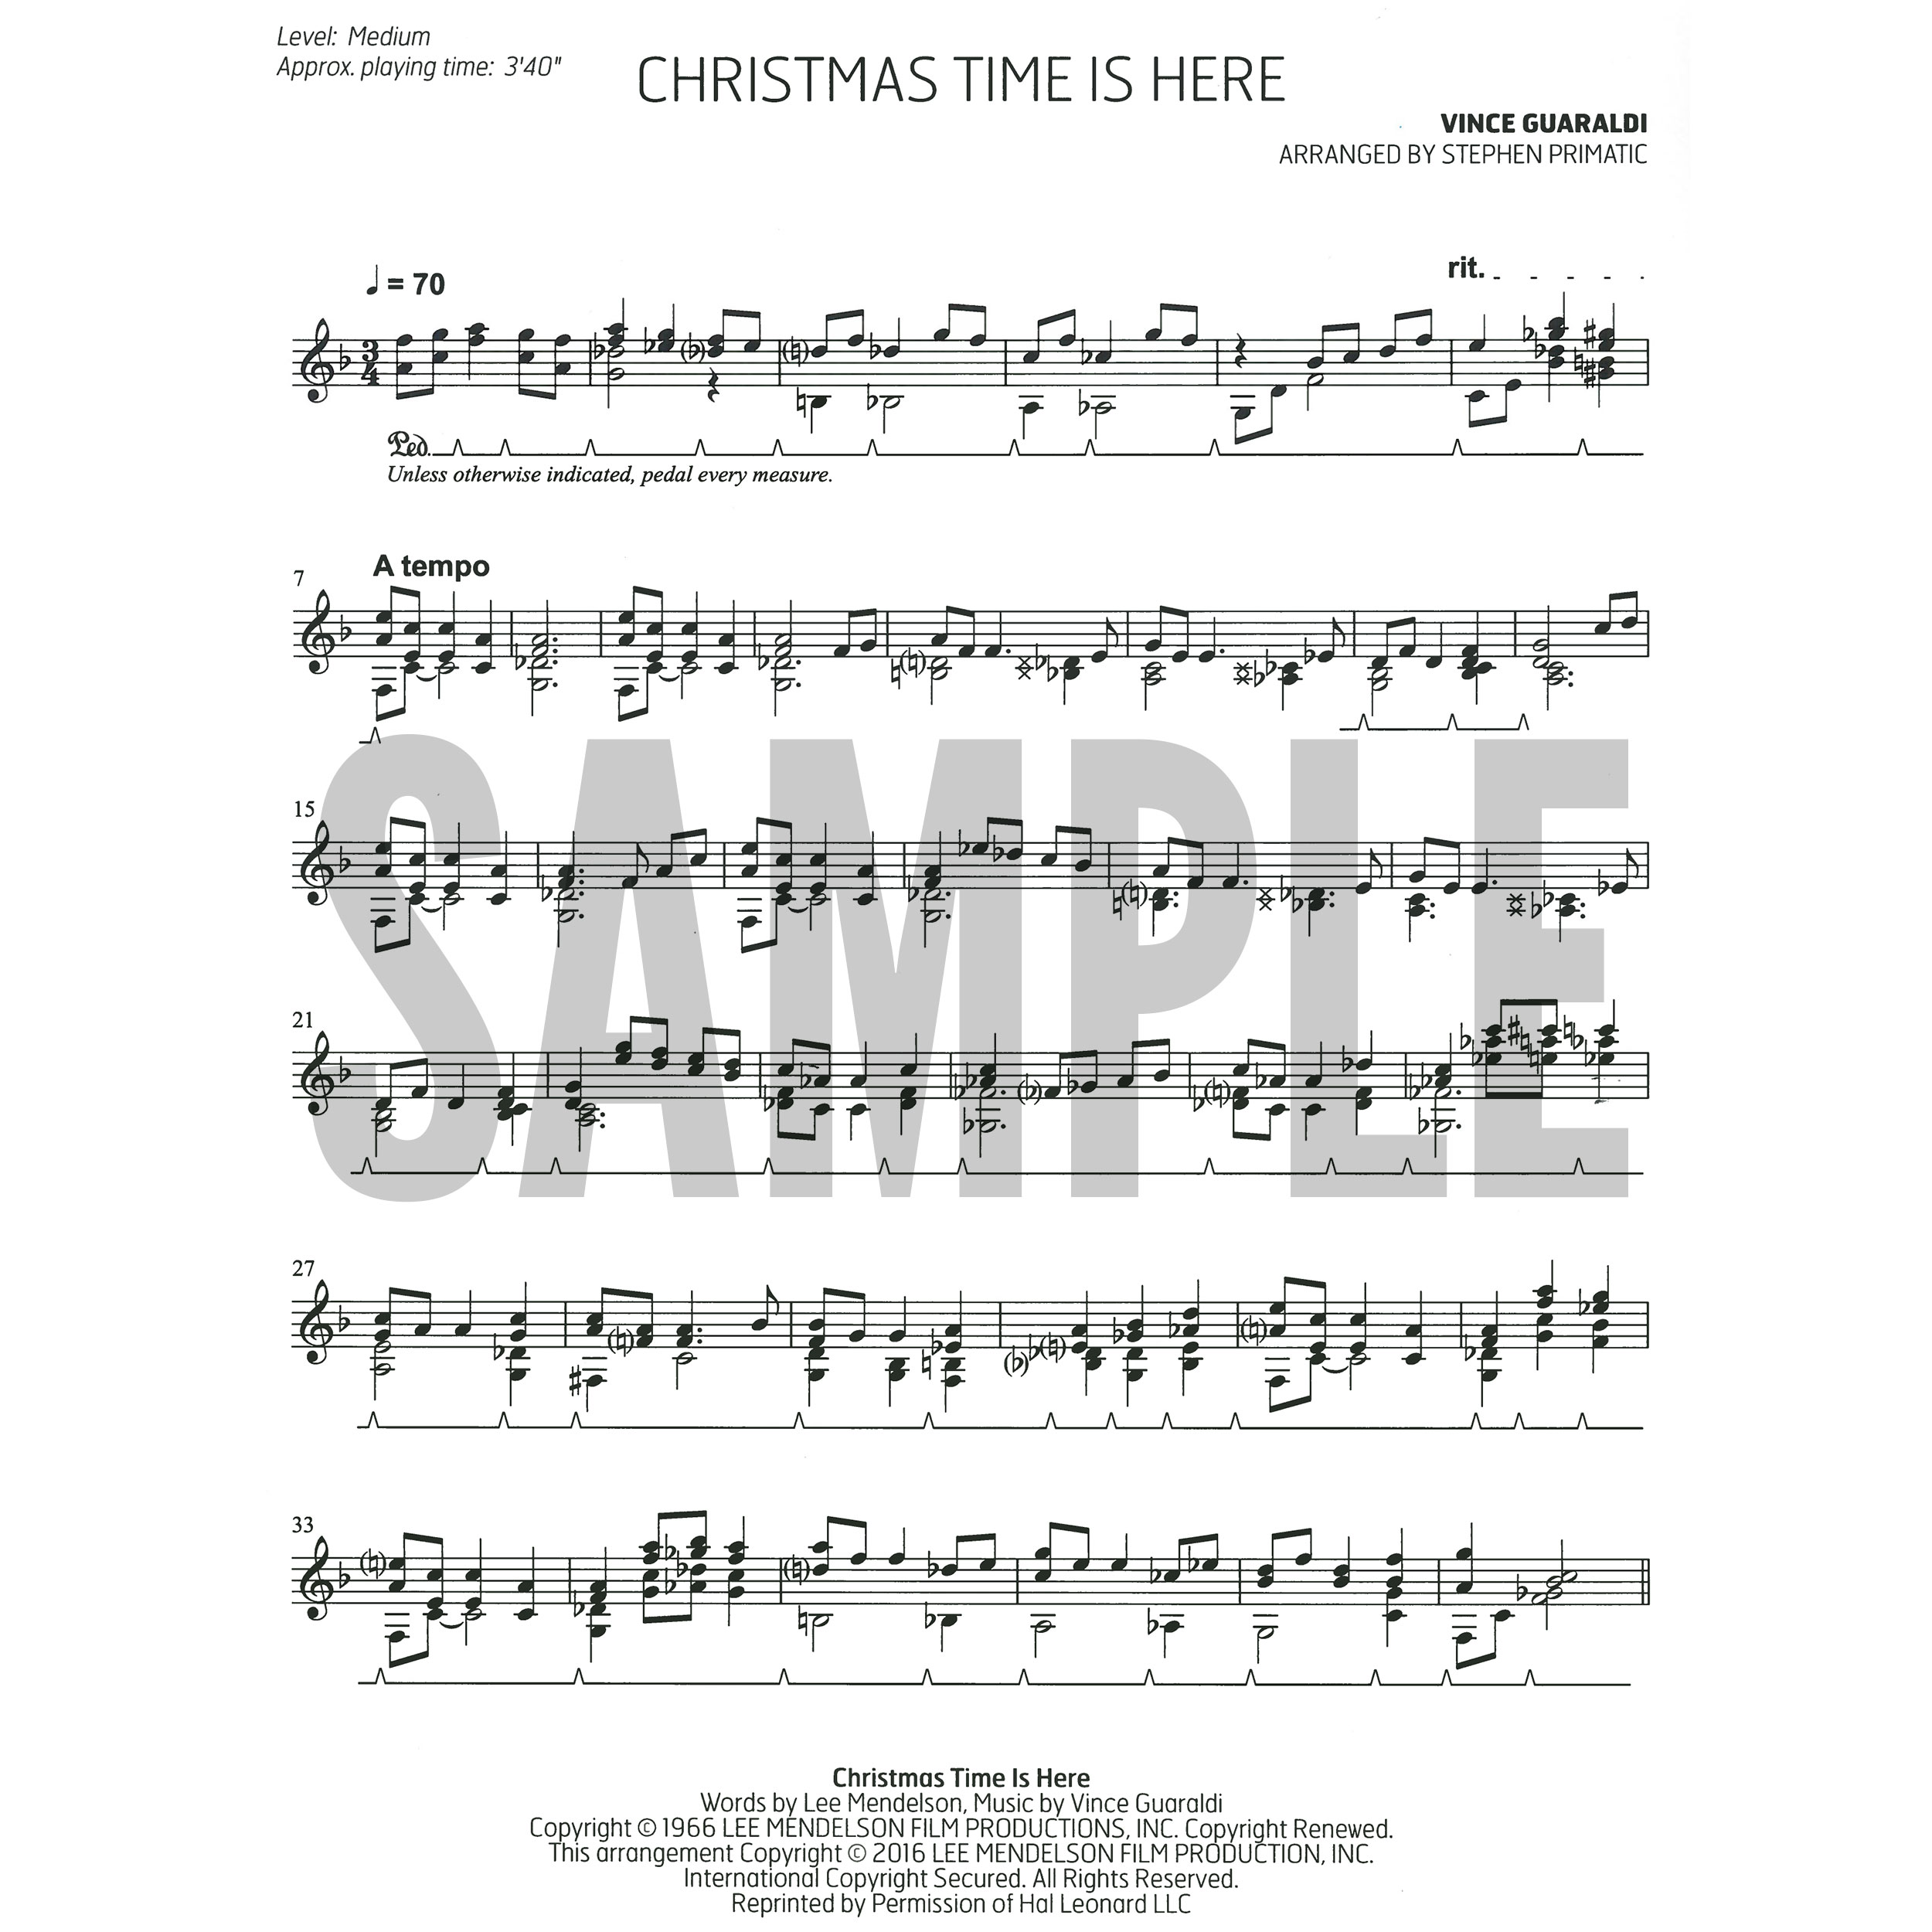 stephen primatic alternate image for christmas time is here by vince guaraldi arr - Vince Guaraldi Christmas Time Is Here